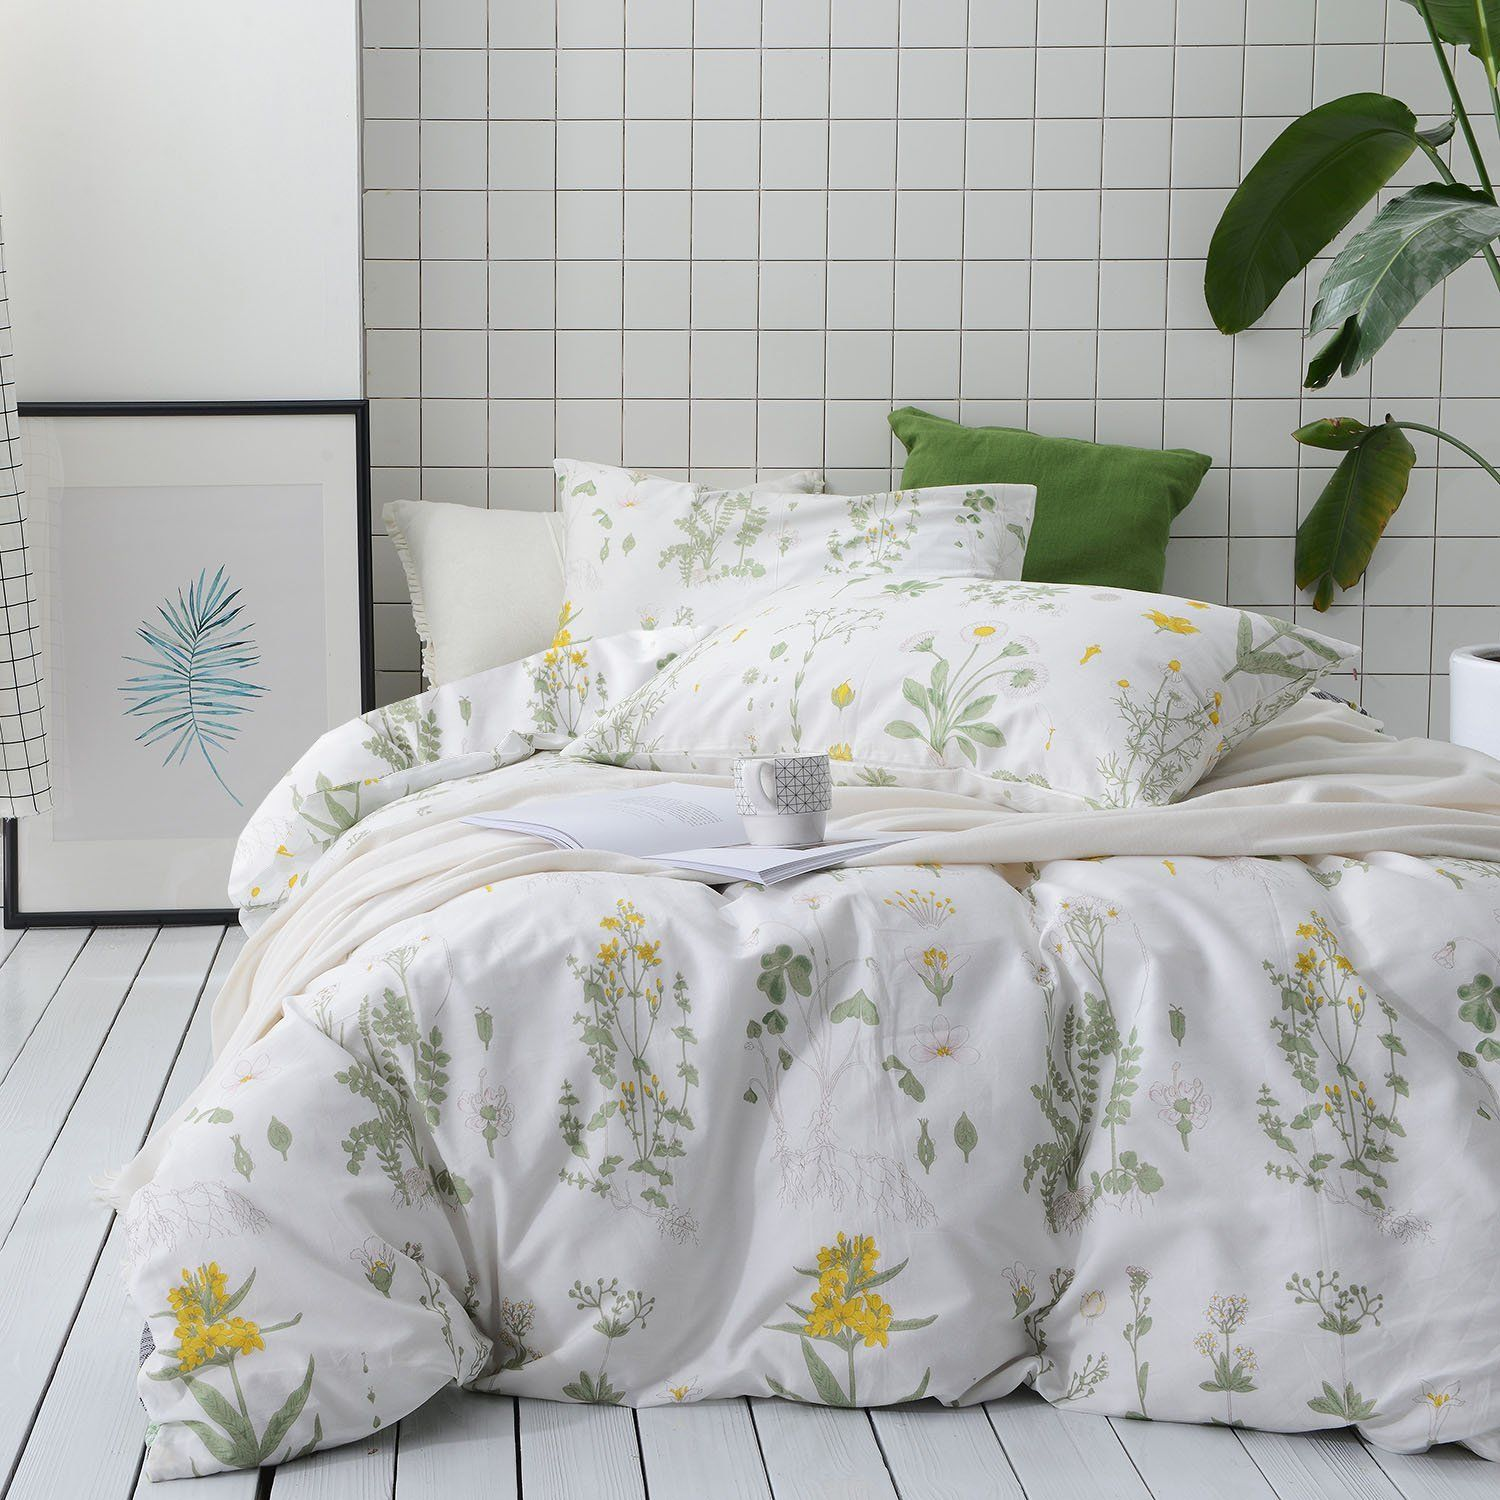 Floral Comforter Set Wake In Cloud White Flowers Pattern Printed on Light Blue Green 3pcs, Queen Size Soft Microfiber Bedding